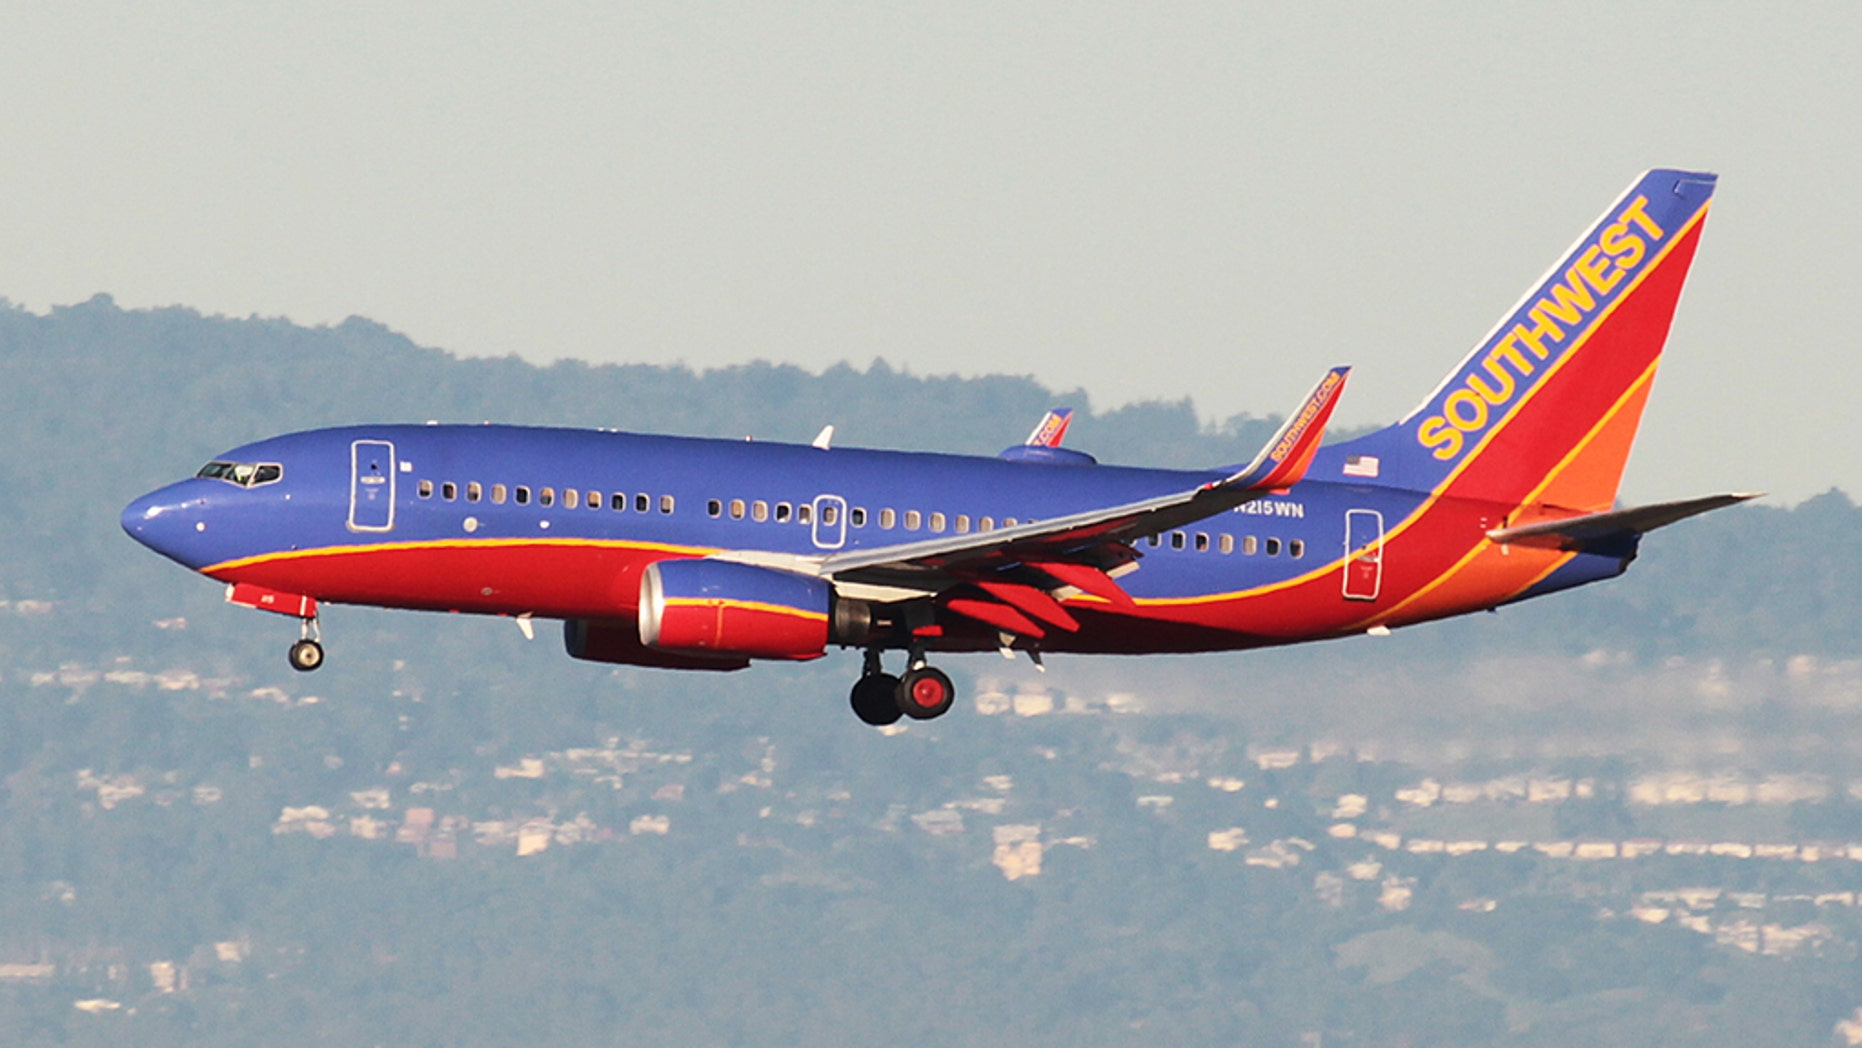 People expressed shock over the employee's handling of the items,calling for Southwest to fire the baggage handler.